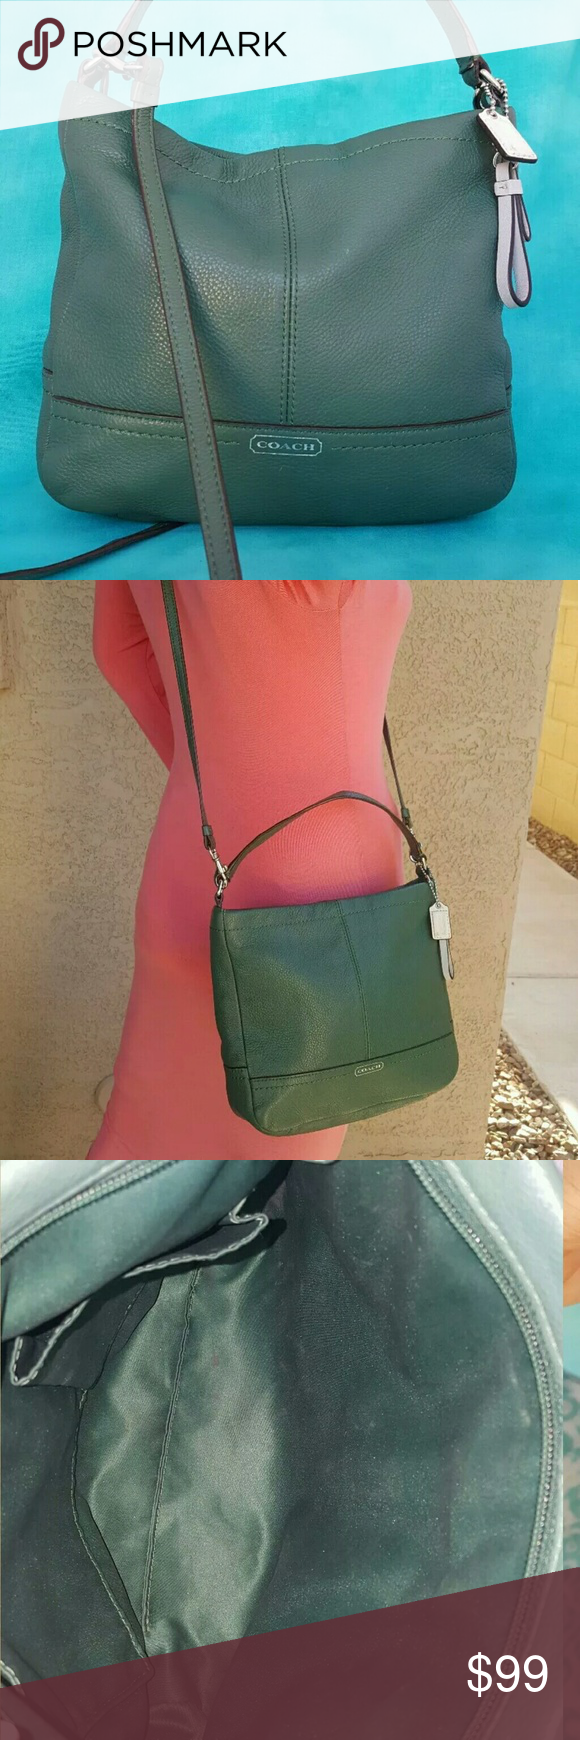 """COACH 49160 PARK MINI DUFFLE CROSSBODY PURSE *darker green pebbled leather  SMALL SIZE   8 x 9"""" *silver hardware  *zip closure  *includes 2 hangtags  *includes crossbody strap  *coach logo stamped on front  CONDITION: BAG IS PREOWNED BUT IN VERY NICE CONDITION INSIDE AND OUT. HANDLES ARE STURDY, ALL ZIPPERS WORK, CLEAN. SUPER CUTE BAG.SMOKE FREE HOME.  *SINCE THIS IS A CROSSBODY MINI STYLE THERE IS NO CREED PATCH. COACH DOES THIS WITH MOST ALL CROSSBODY, MINI BAGUETTES, SWINGPACKS ETC. THE…"""